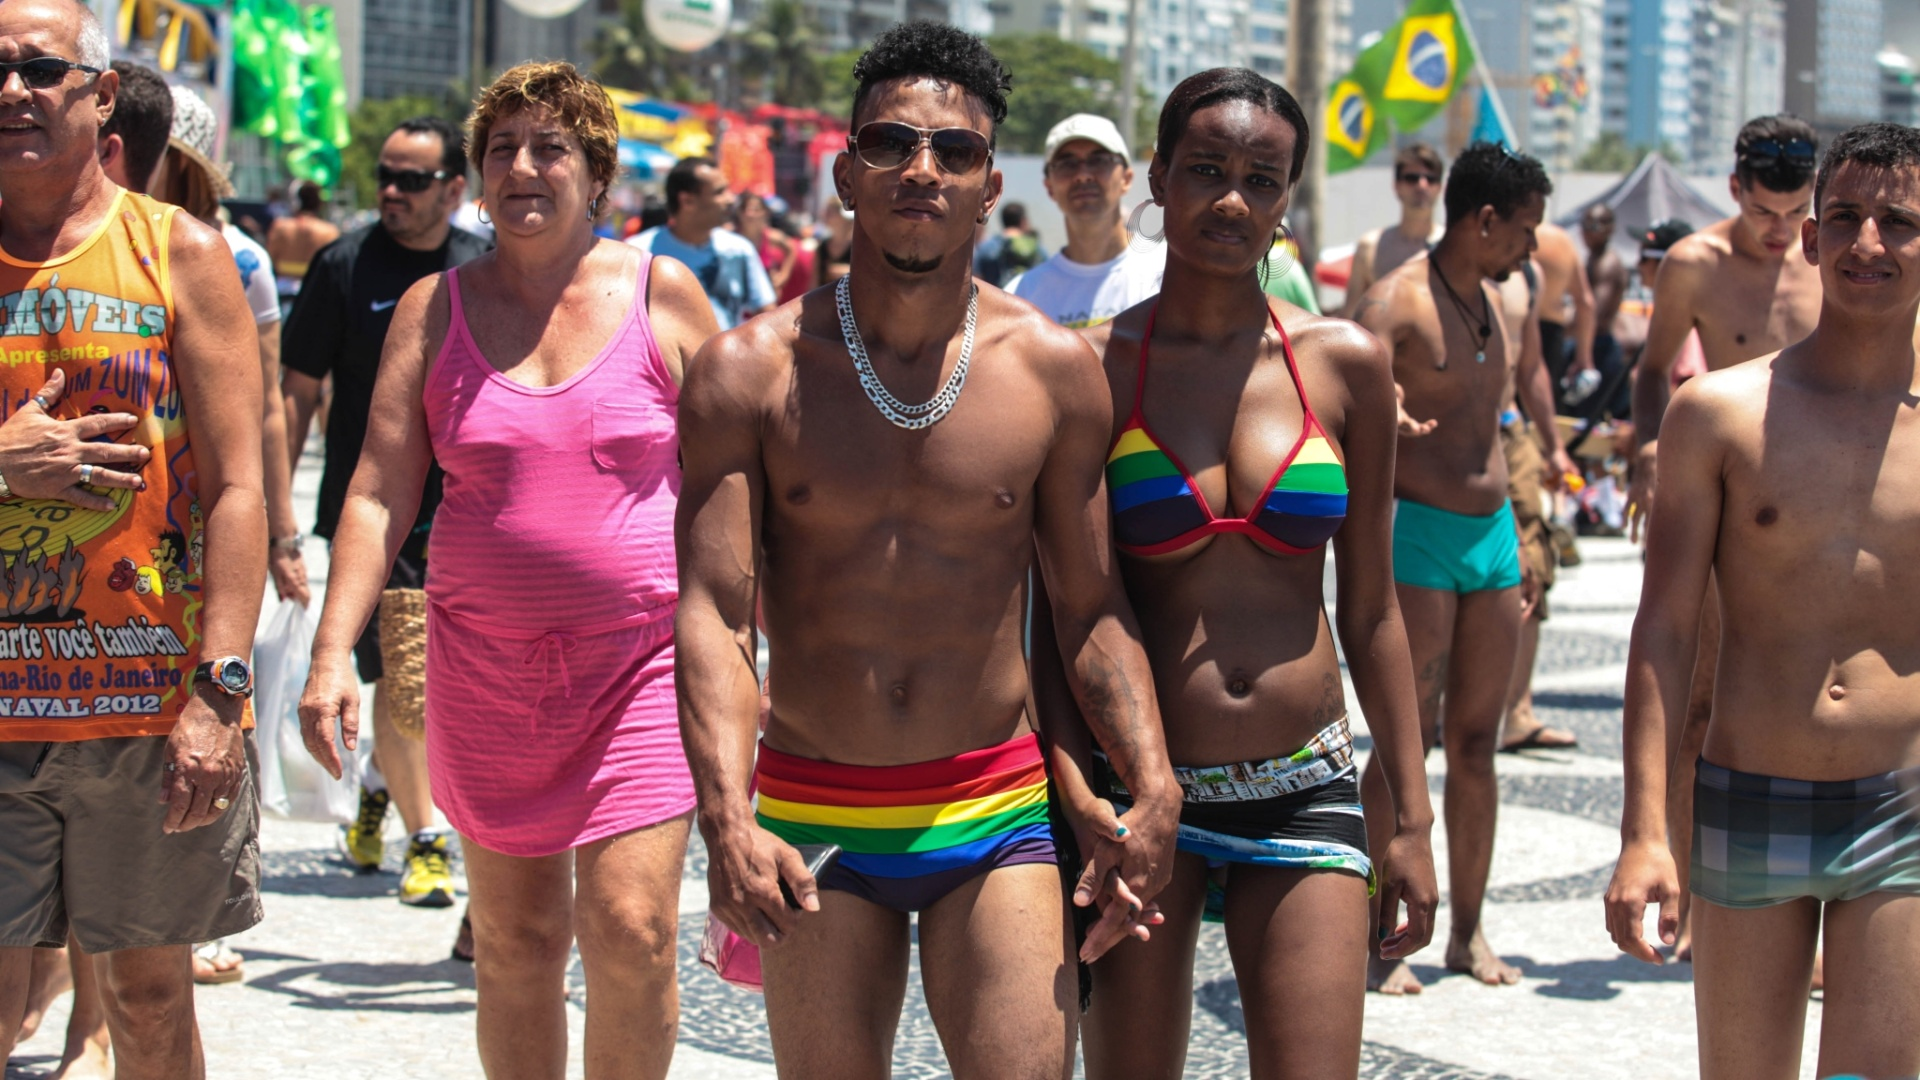 Pblico anda na orla de Copacabana (RJ) durante a 17 Parada do Orgulho LGBT, popularmente conhecida como Parada Gay, na tarde deste domingo (18) 